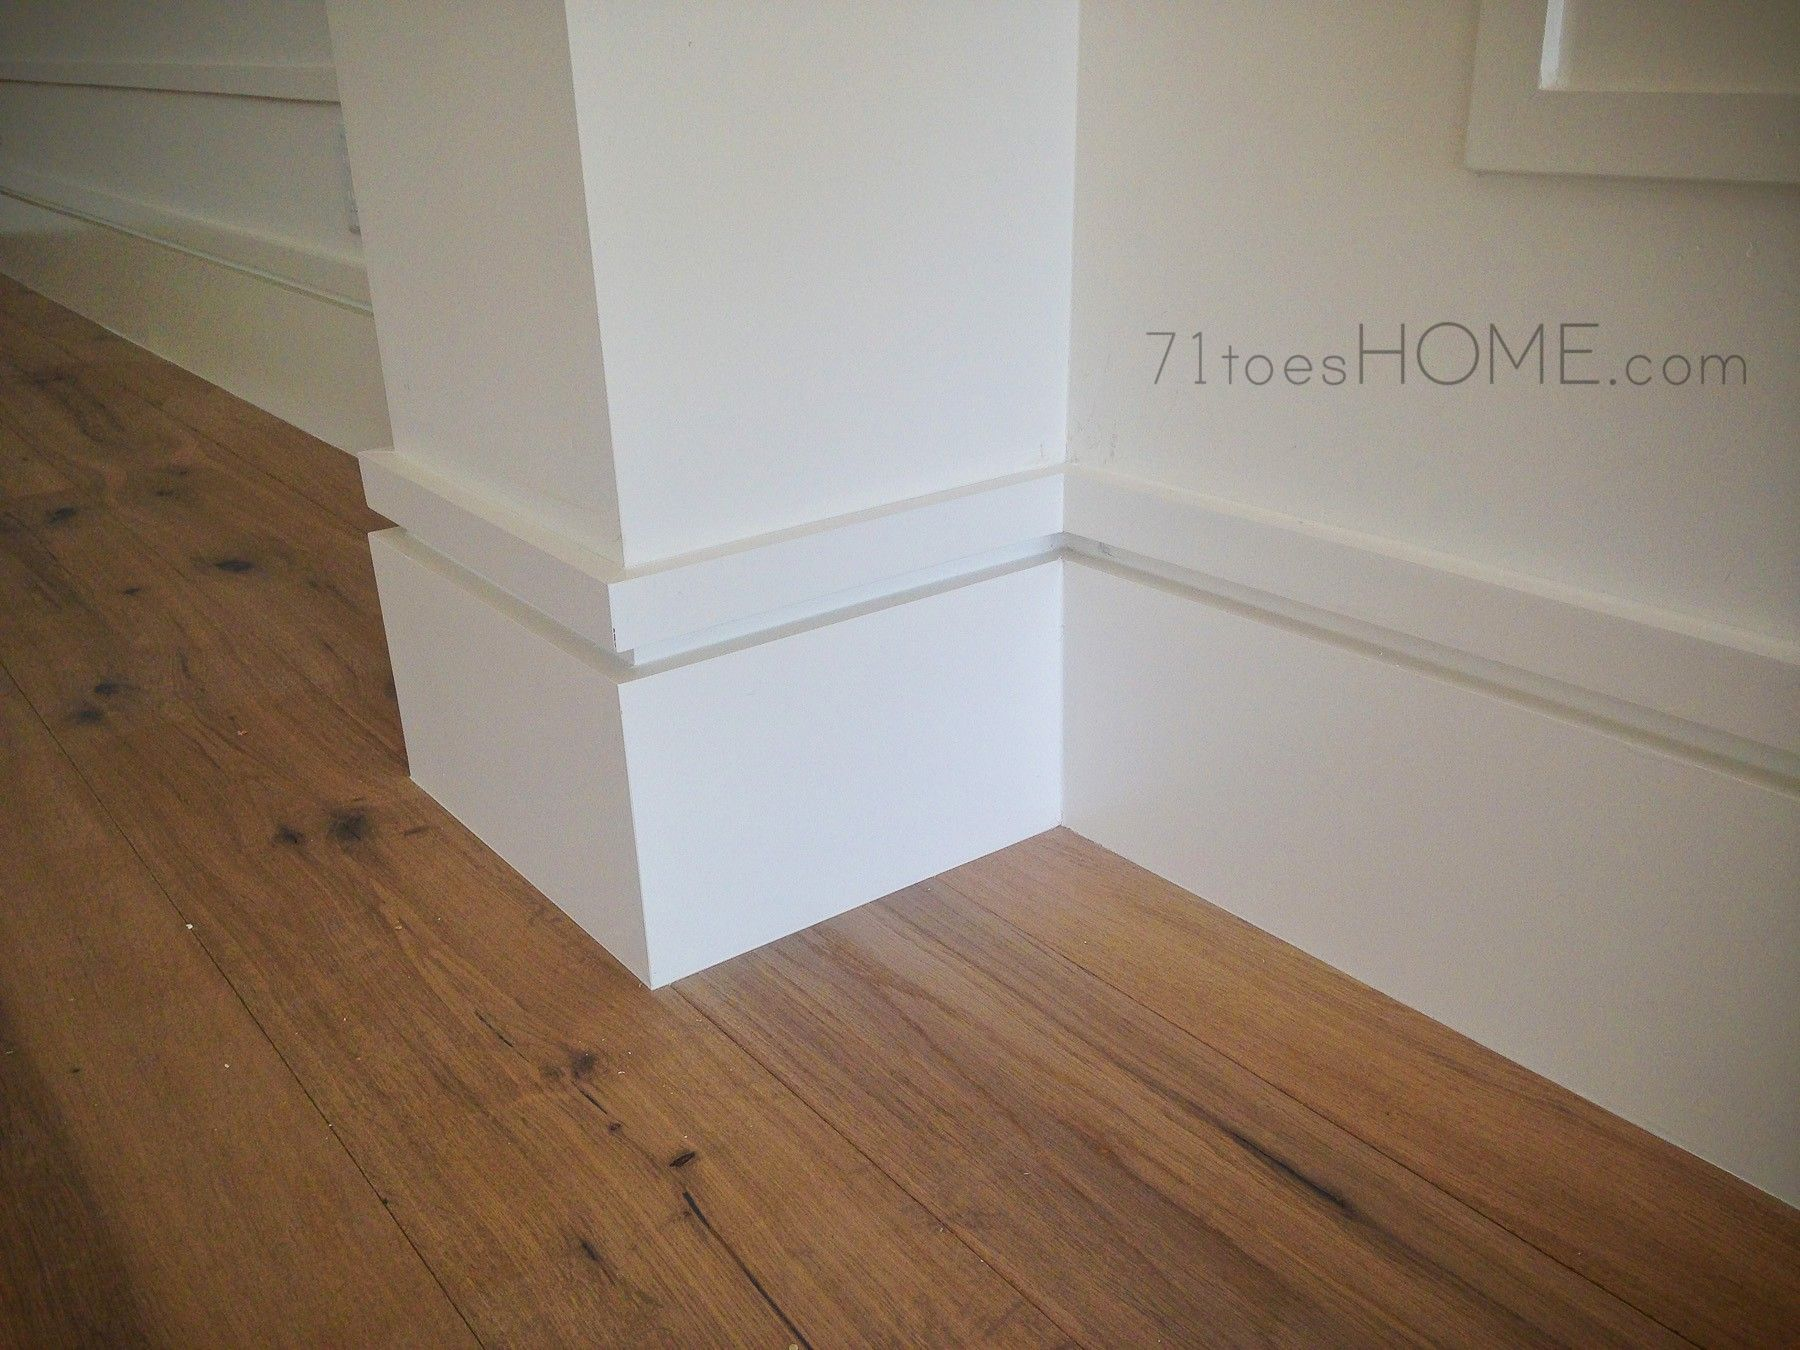 71toes H O M E Baseboard Styles Modern Baseboards Moldings And